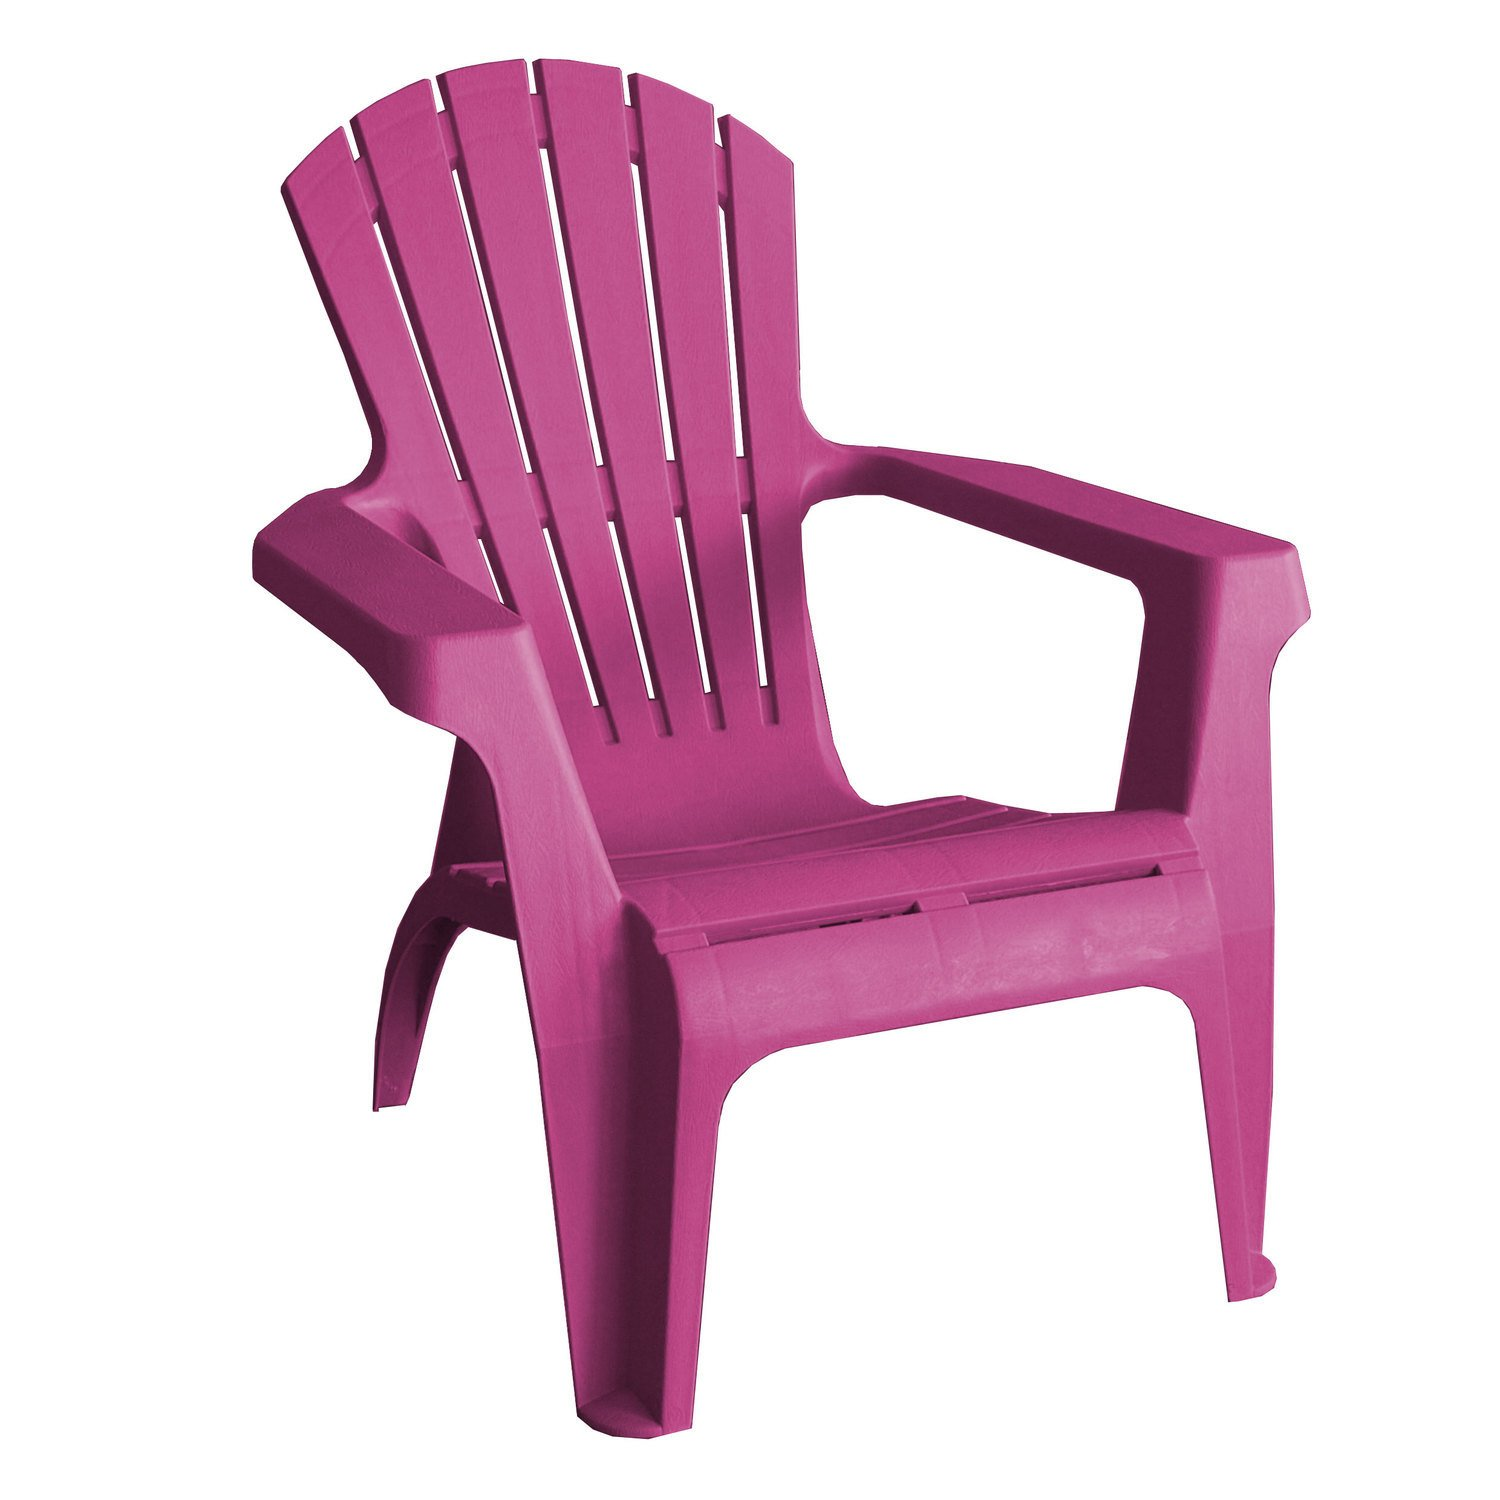 adirondack chair stapelstuhl gartenstuhl kunststoff pink jetzt kaufen. Black Bedroom Furniture Sets. Home Design Ideas